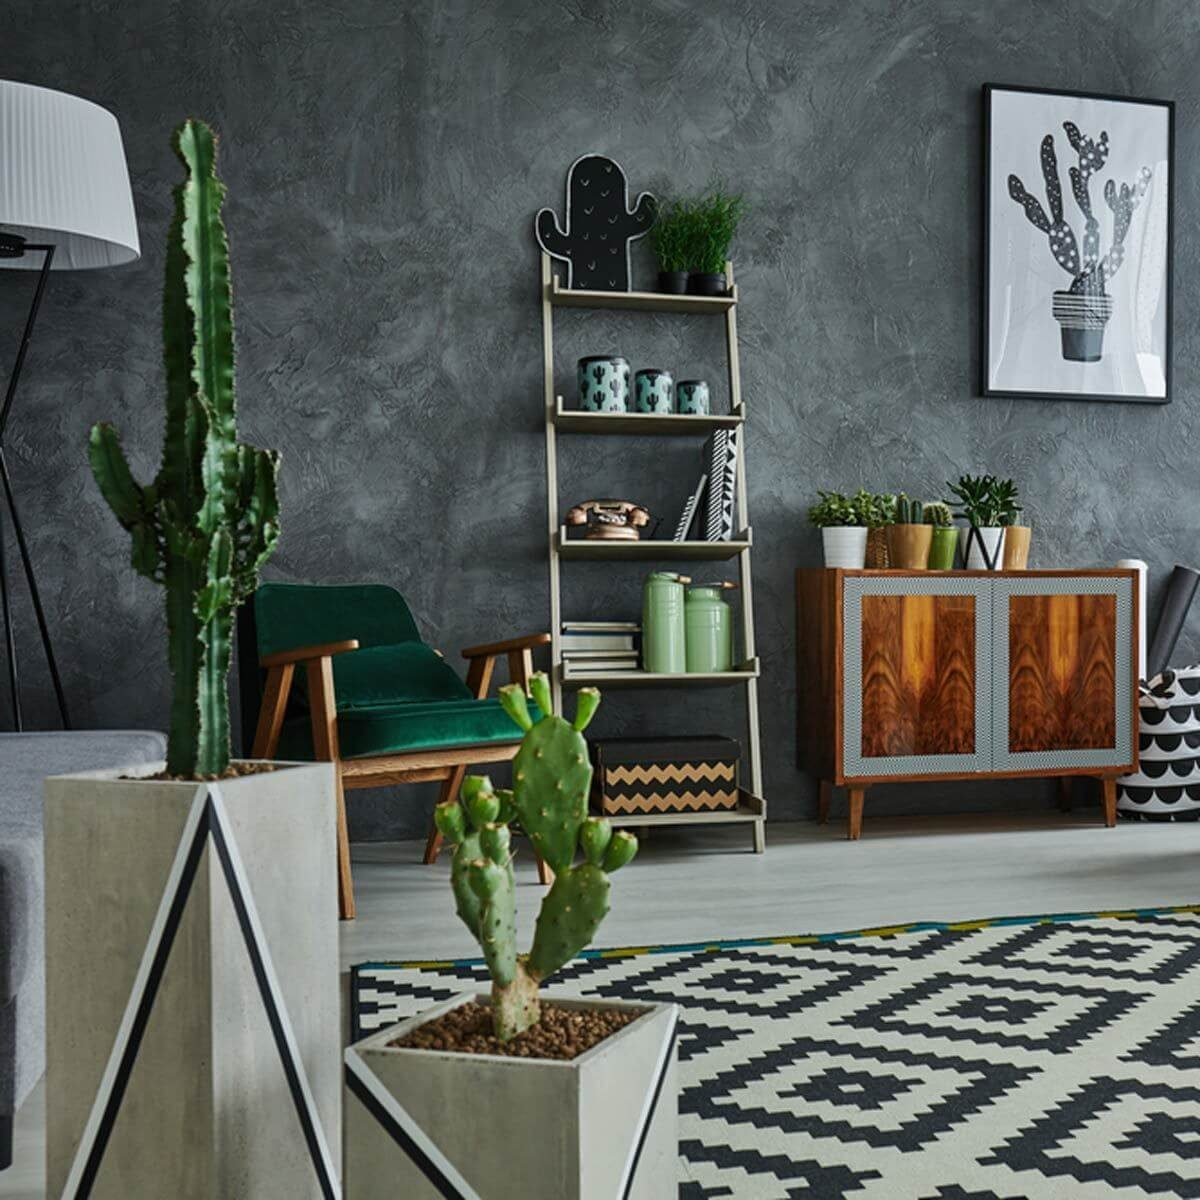 14 Ways To Decorate Your Home With Cactus The Family